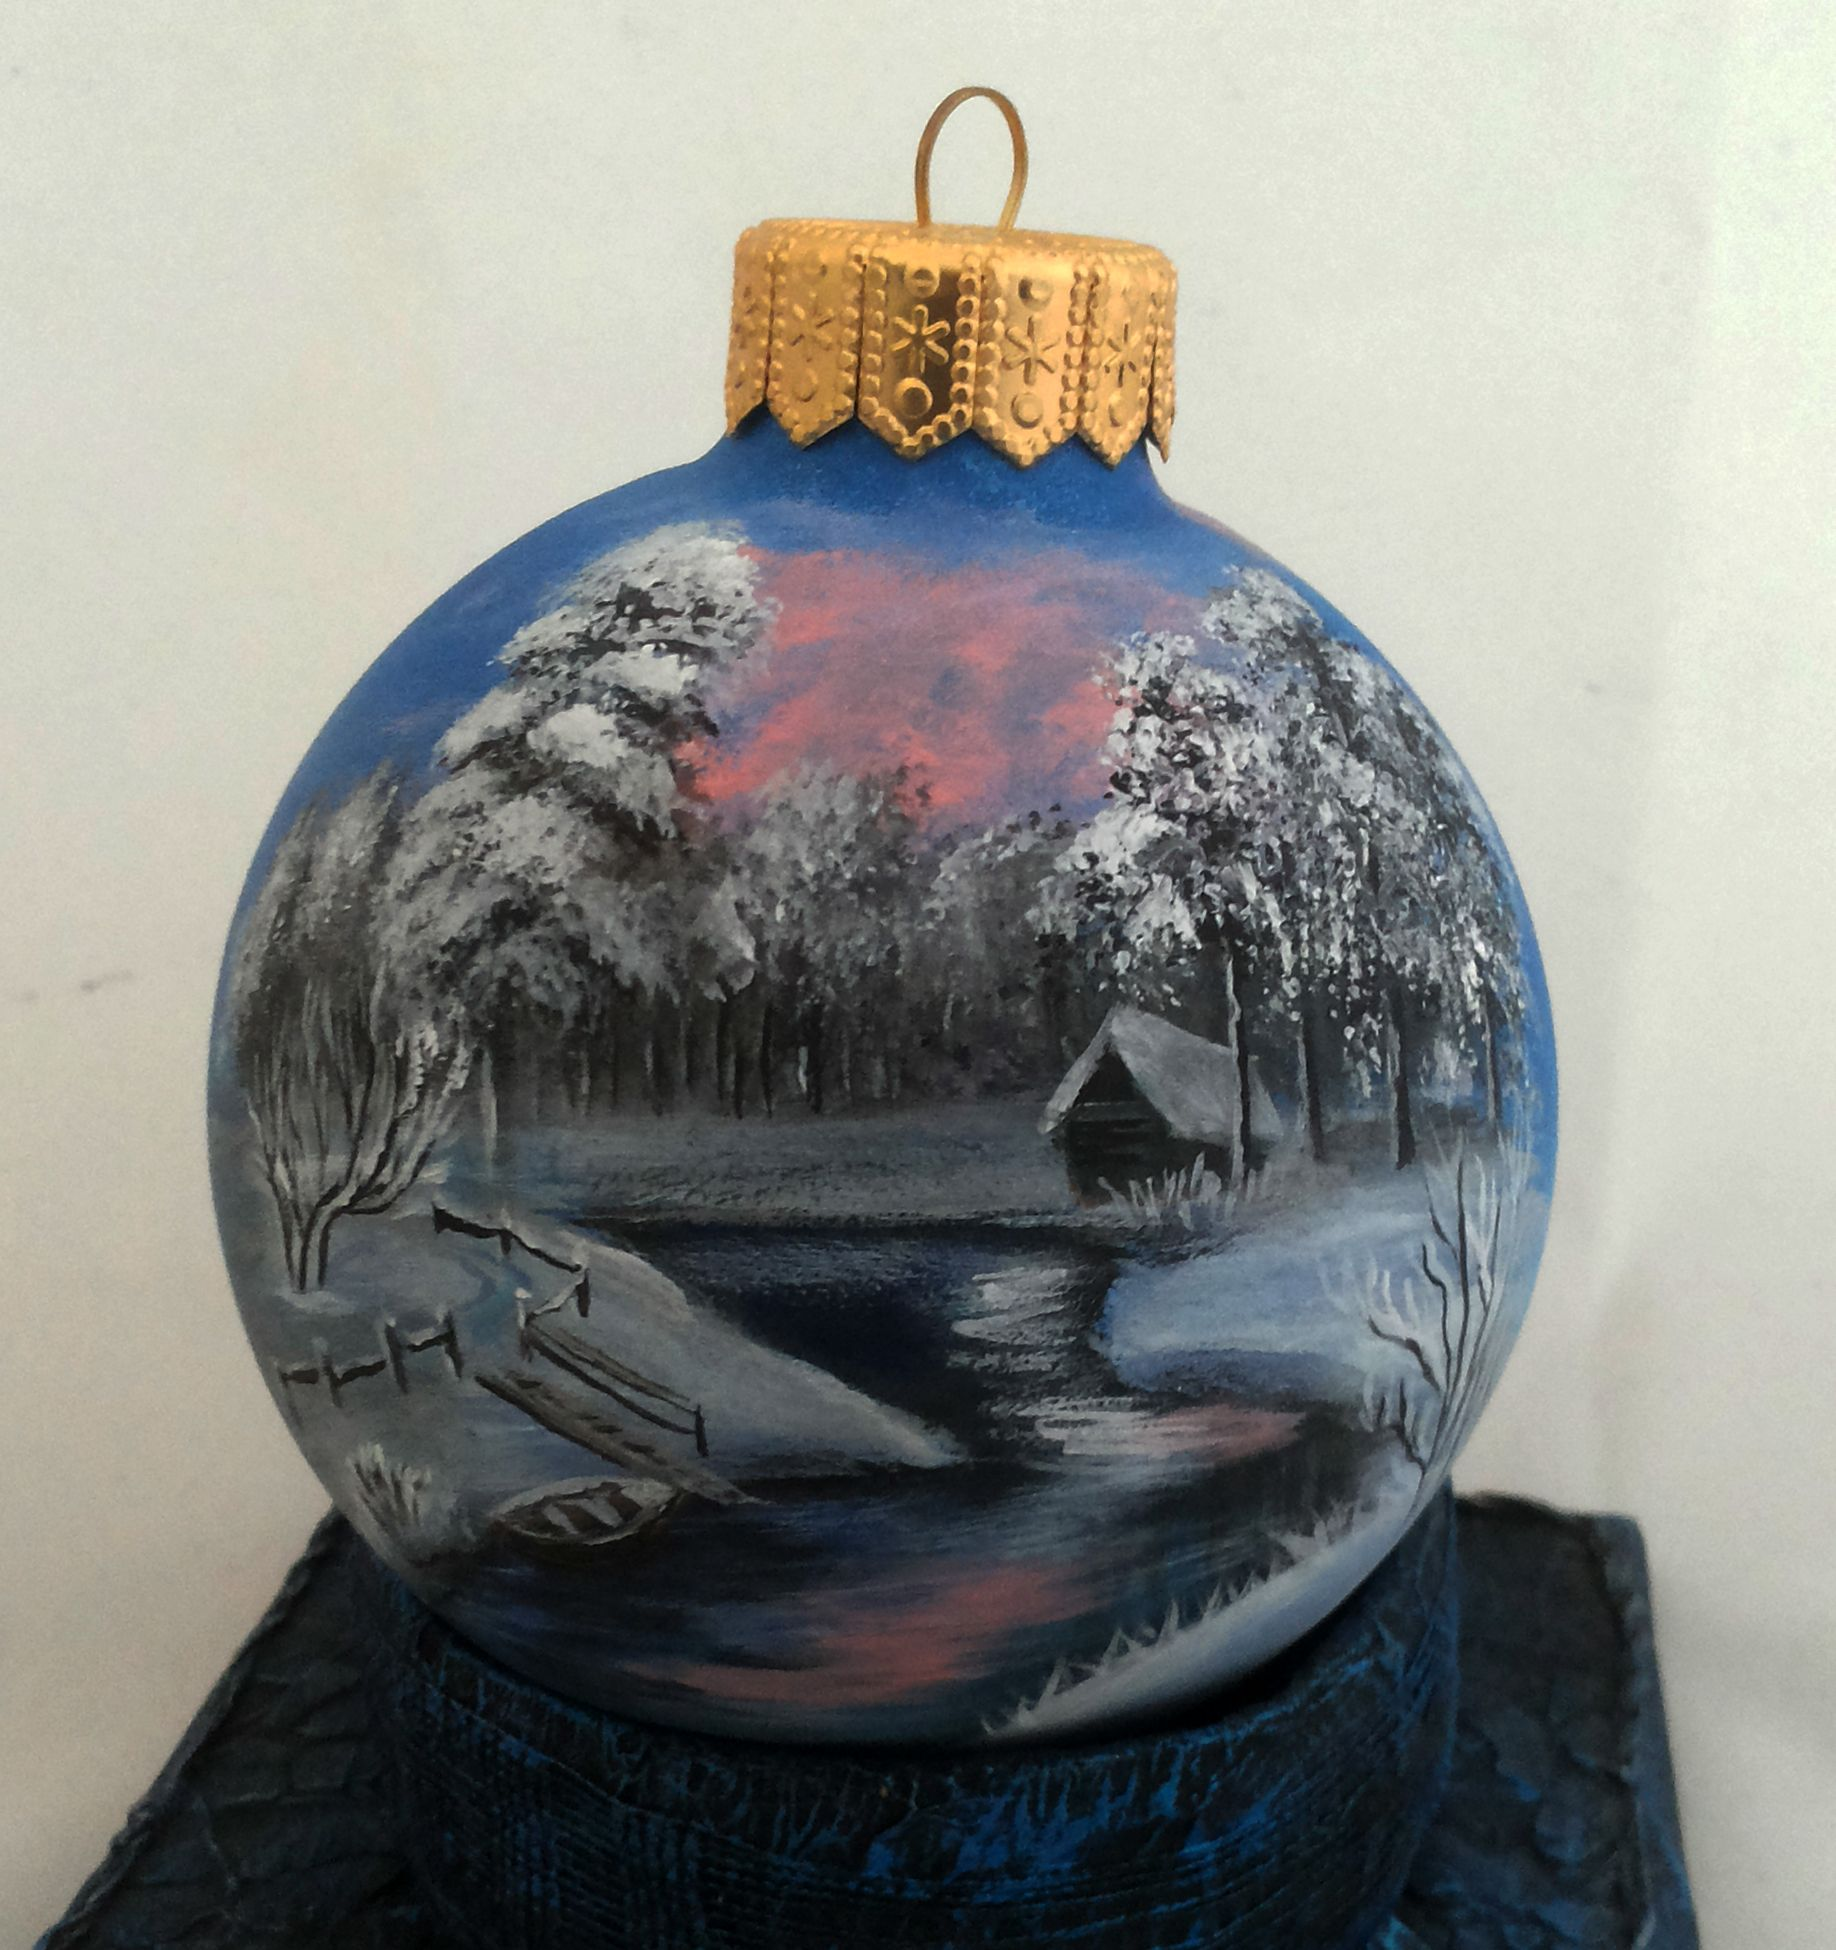 Pin By Kay Couch On Kay S Craft In 2020 Painted Christmas Ornaments Christmas Ornaments Diy Christmas Ornaments